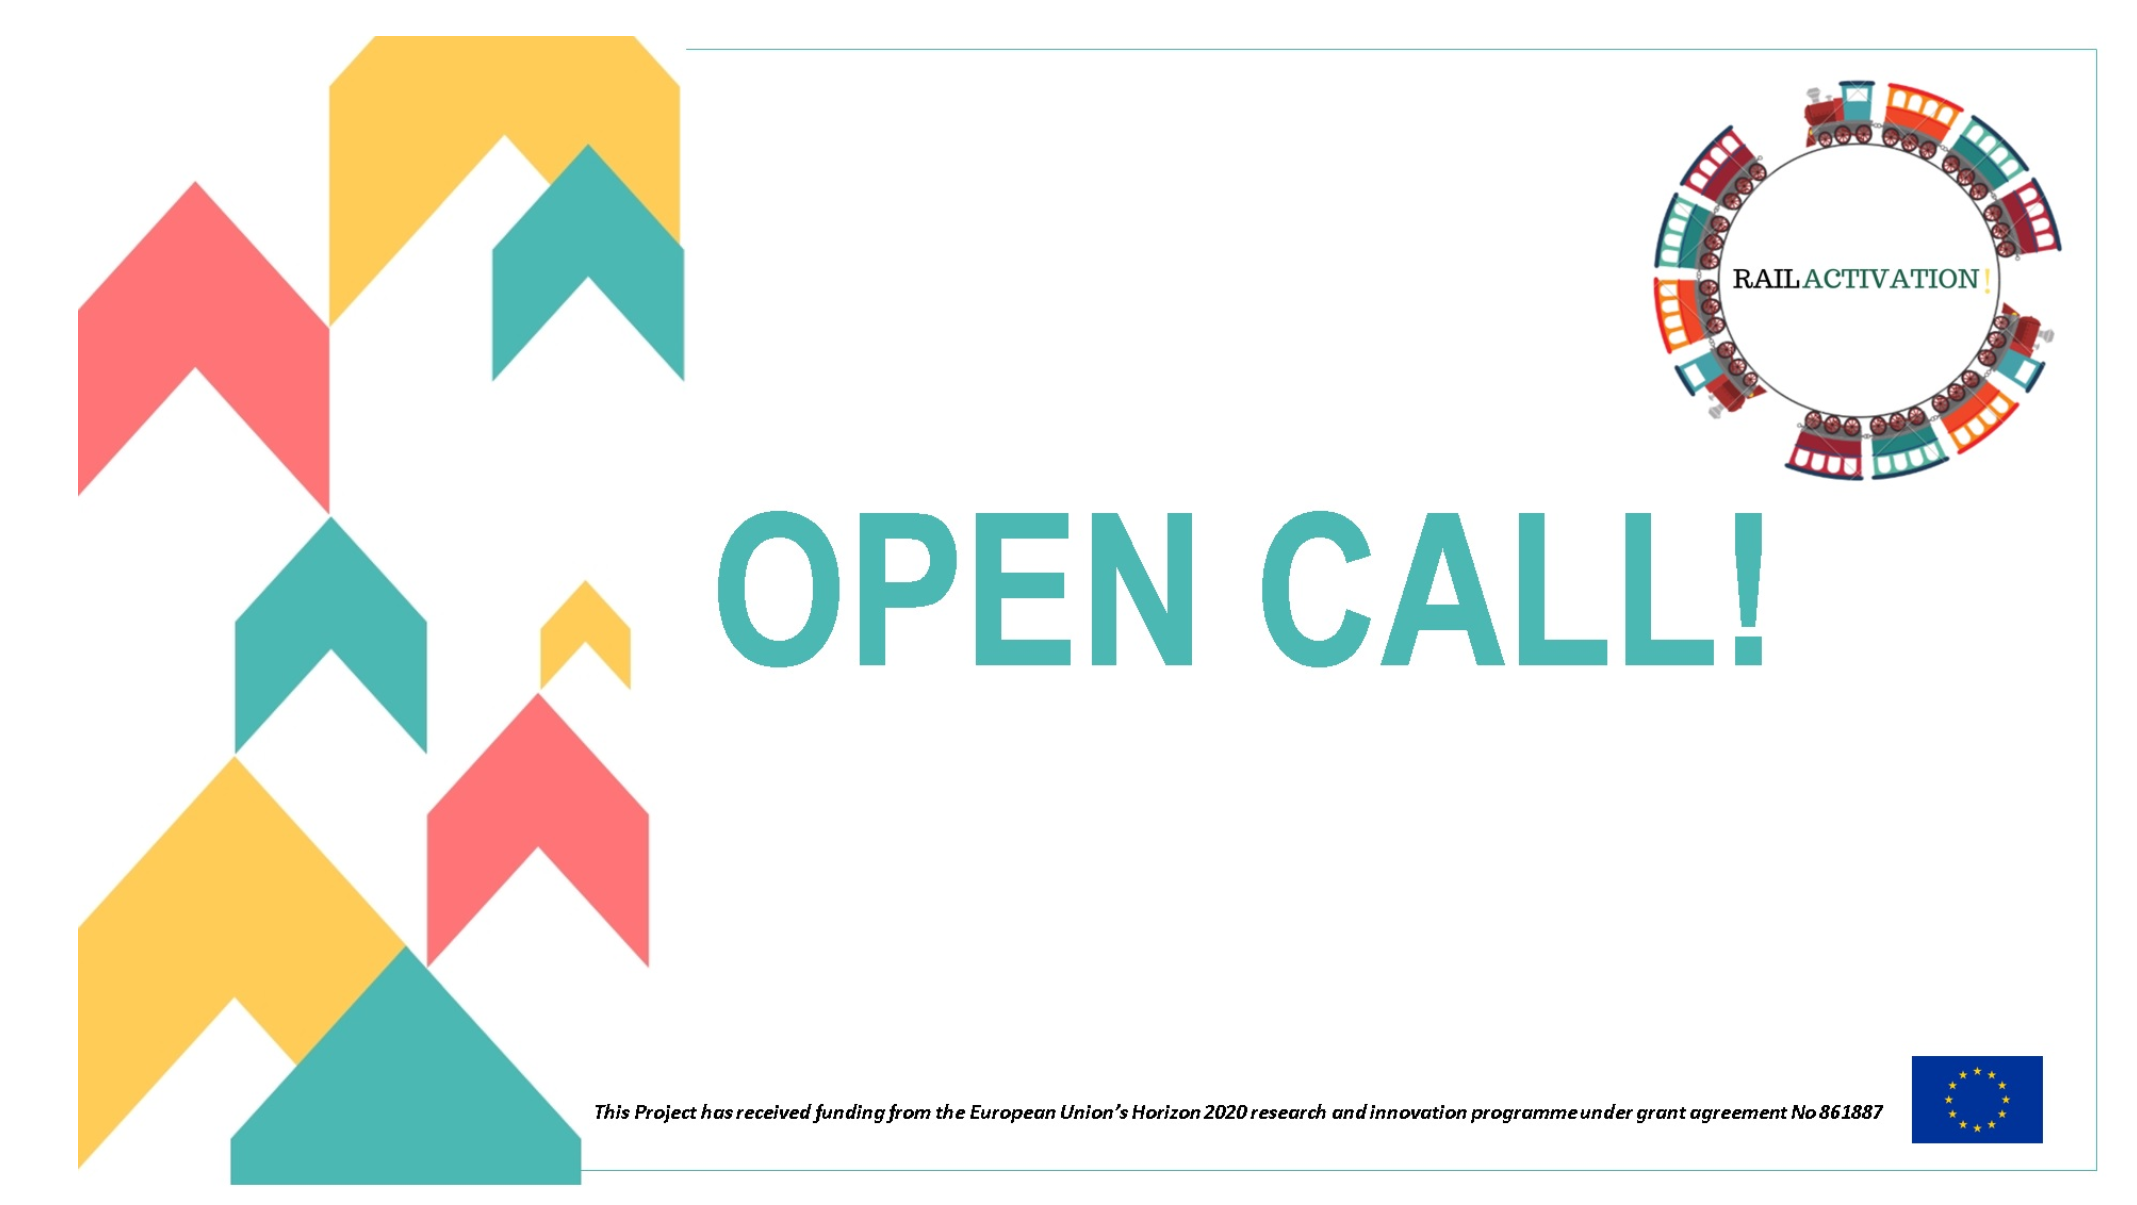 RailActivation Open Call